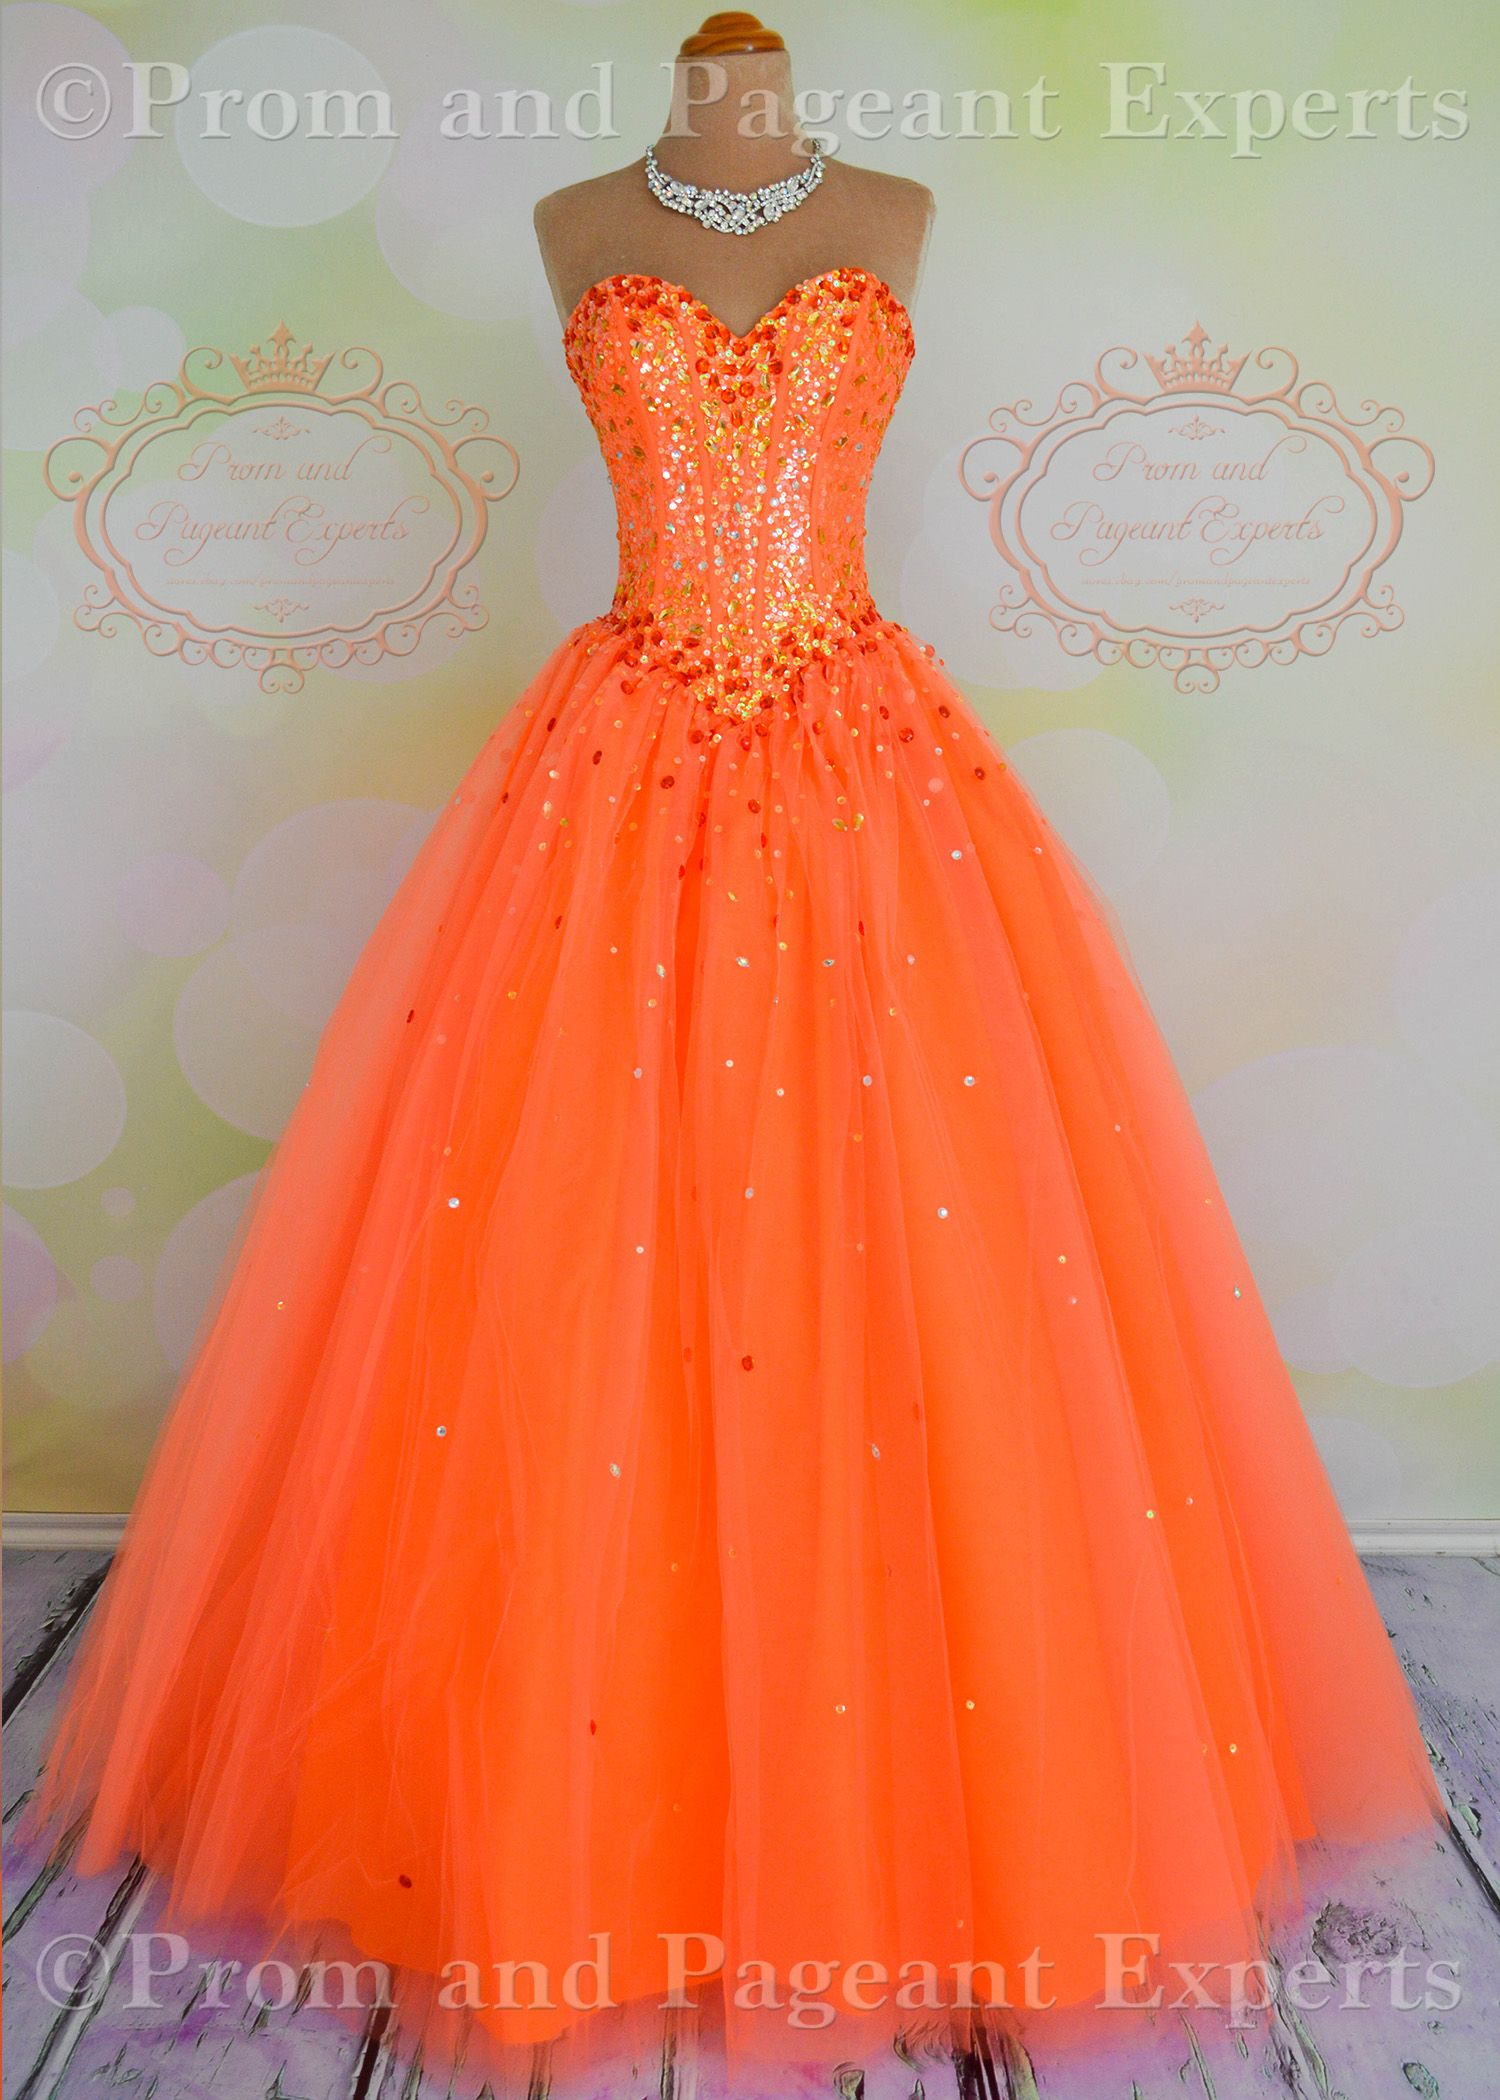 mori lee neon orange prom ball gown dress quince laceup